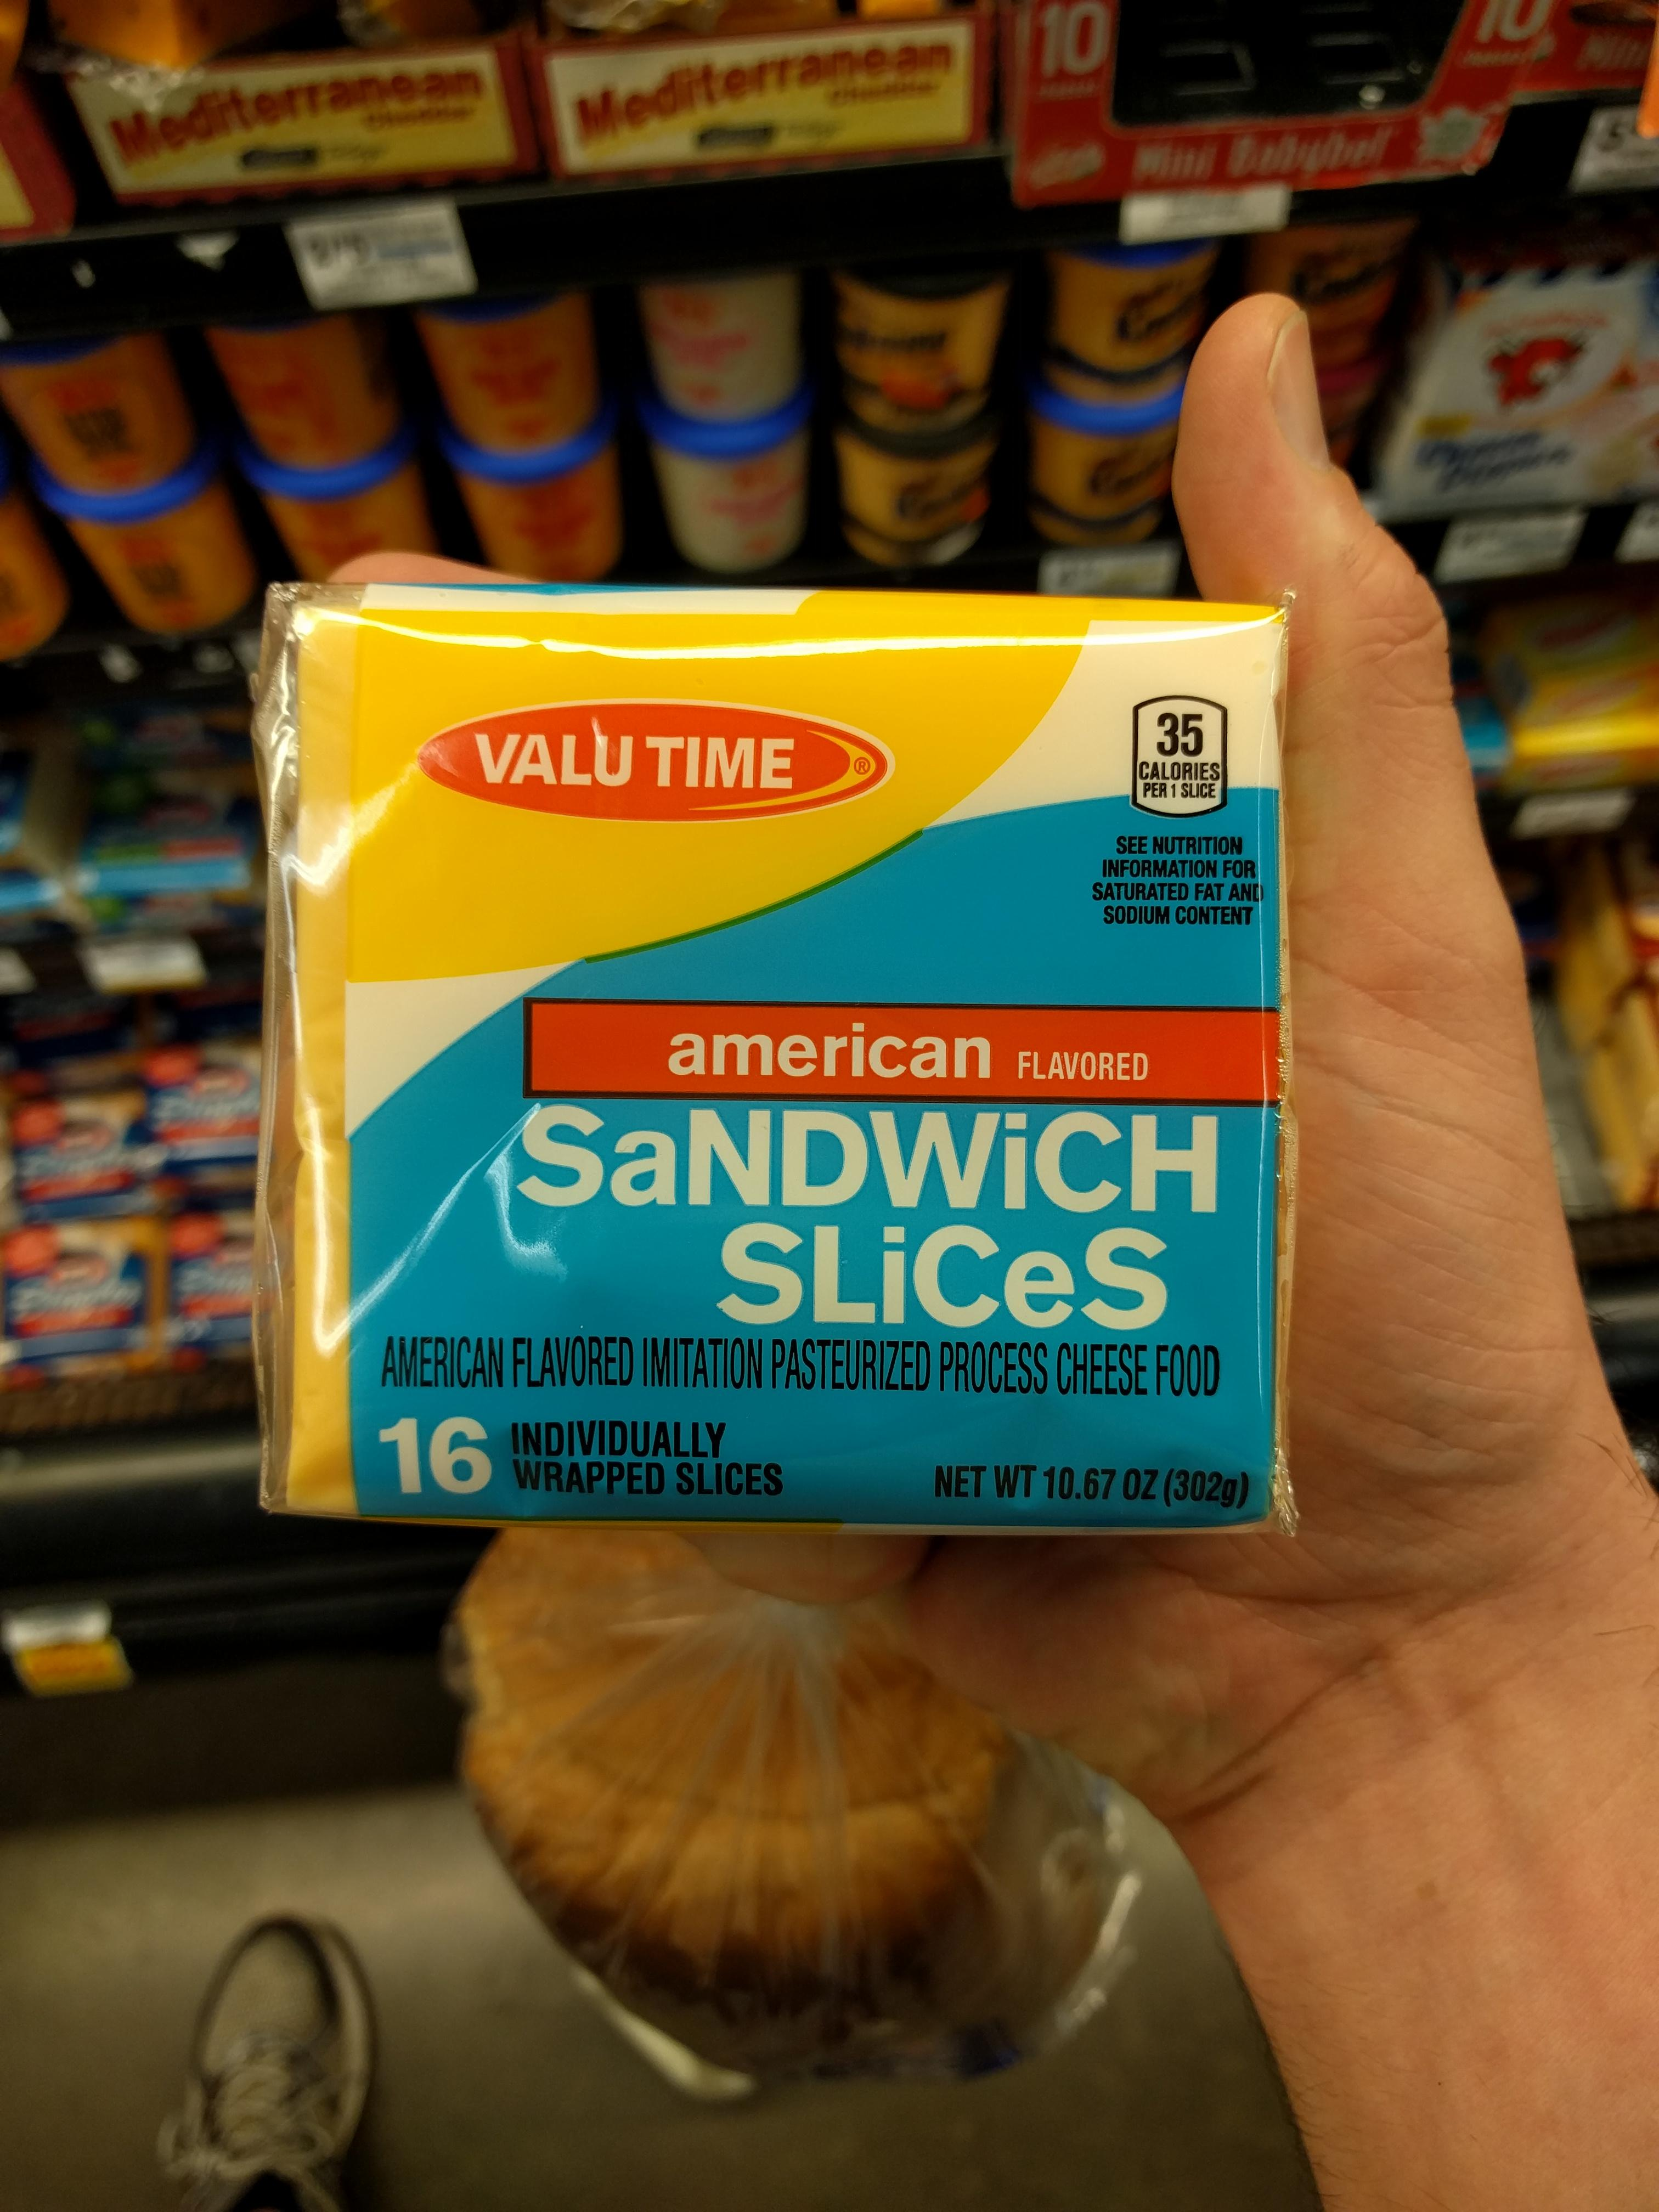 American sandwich slices